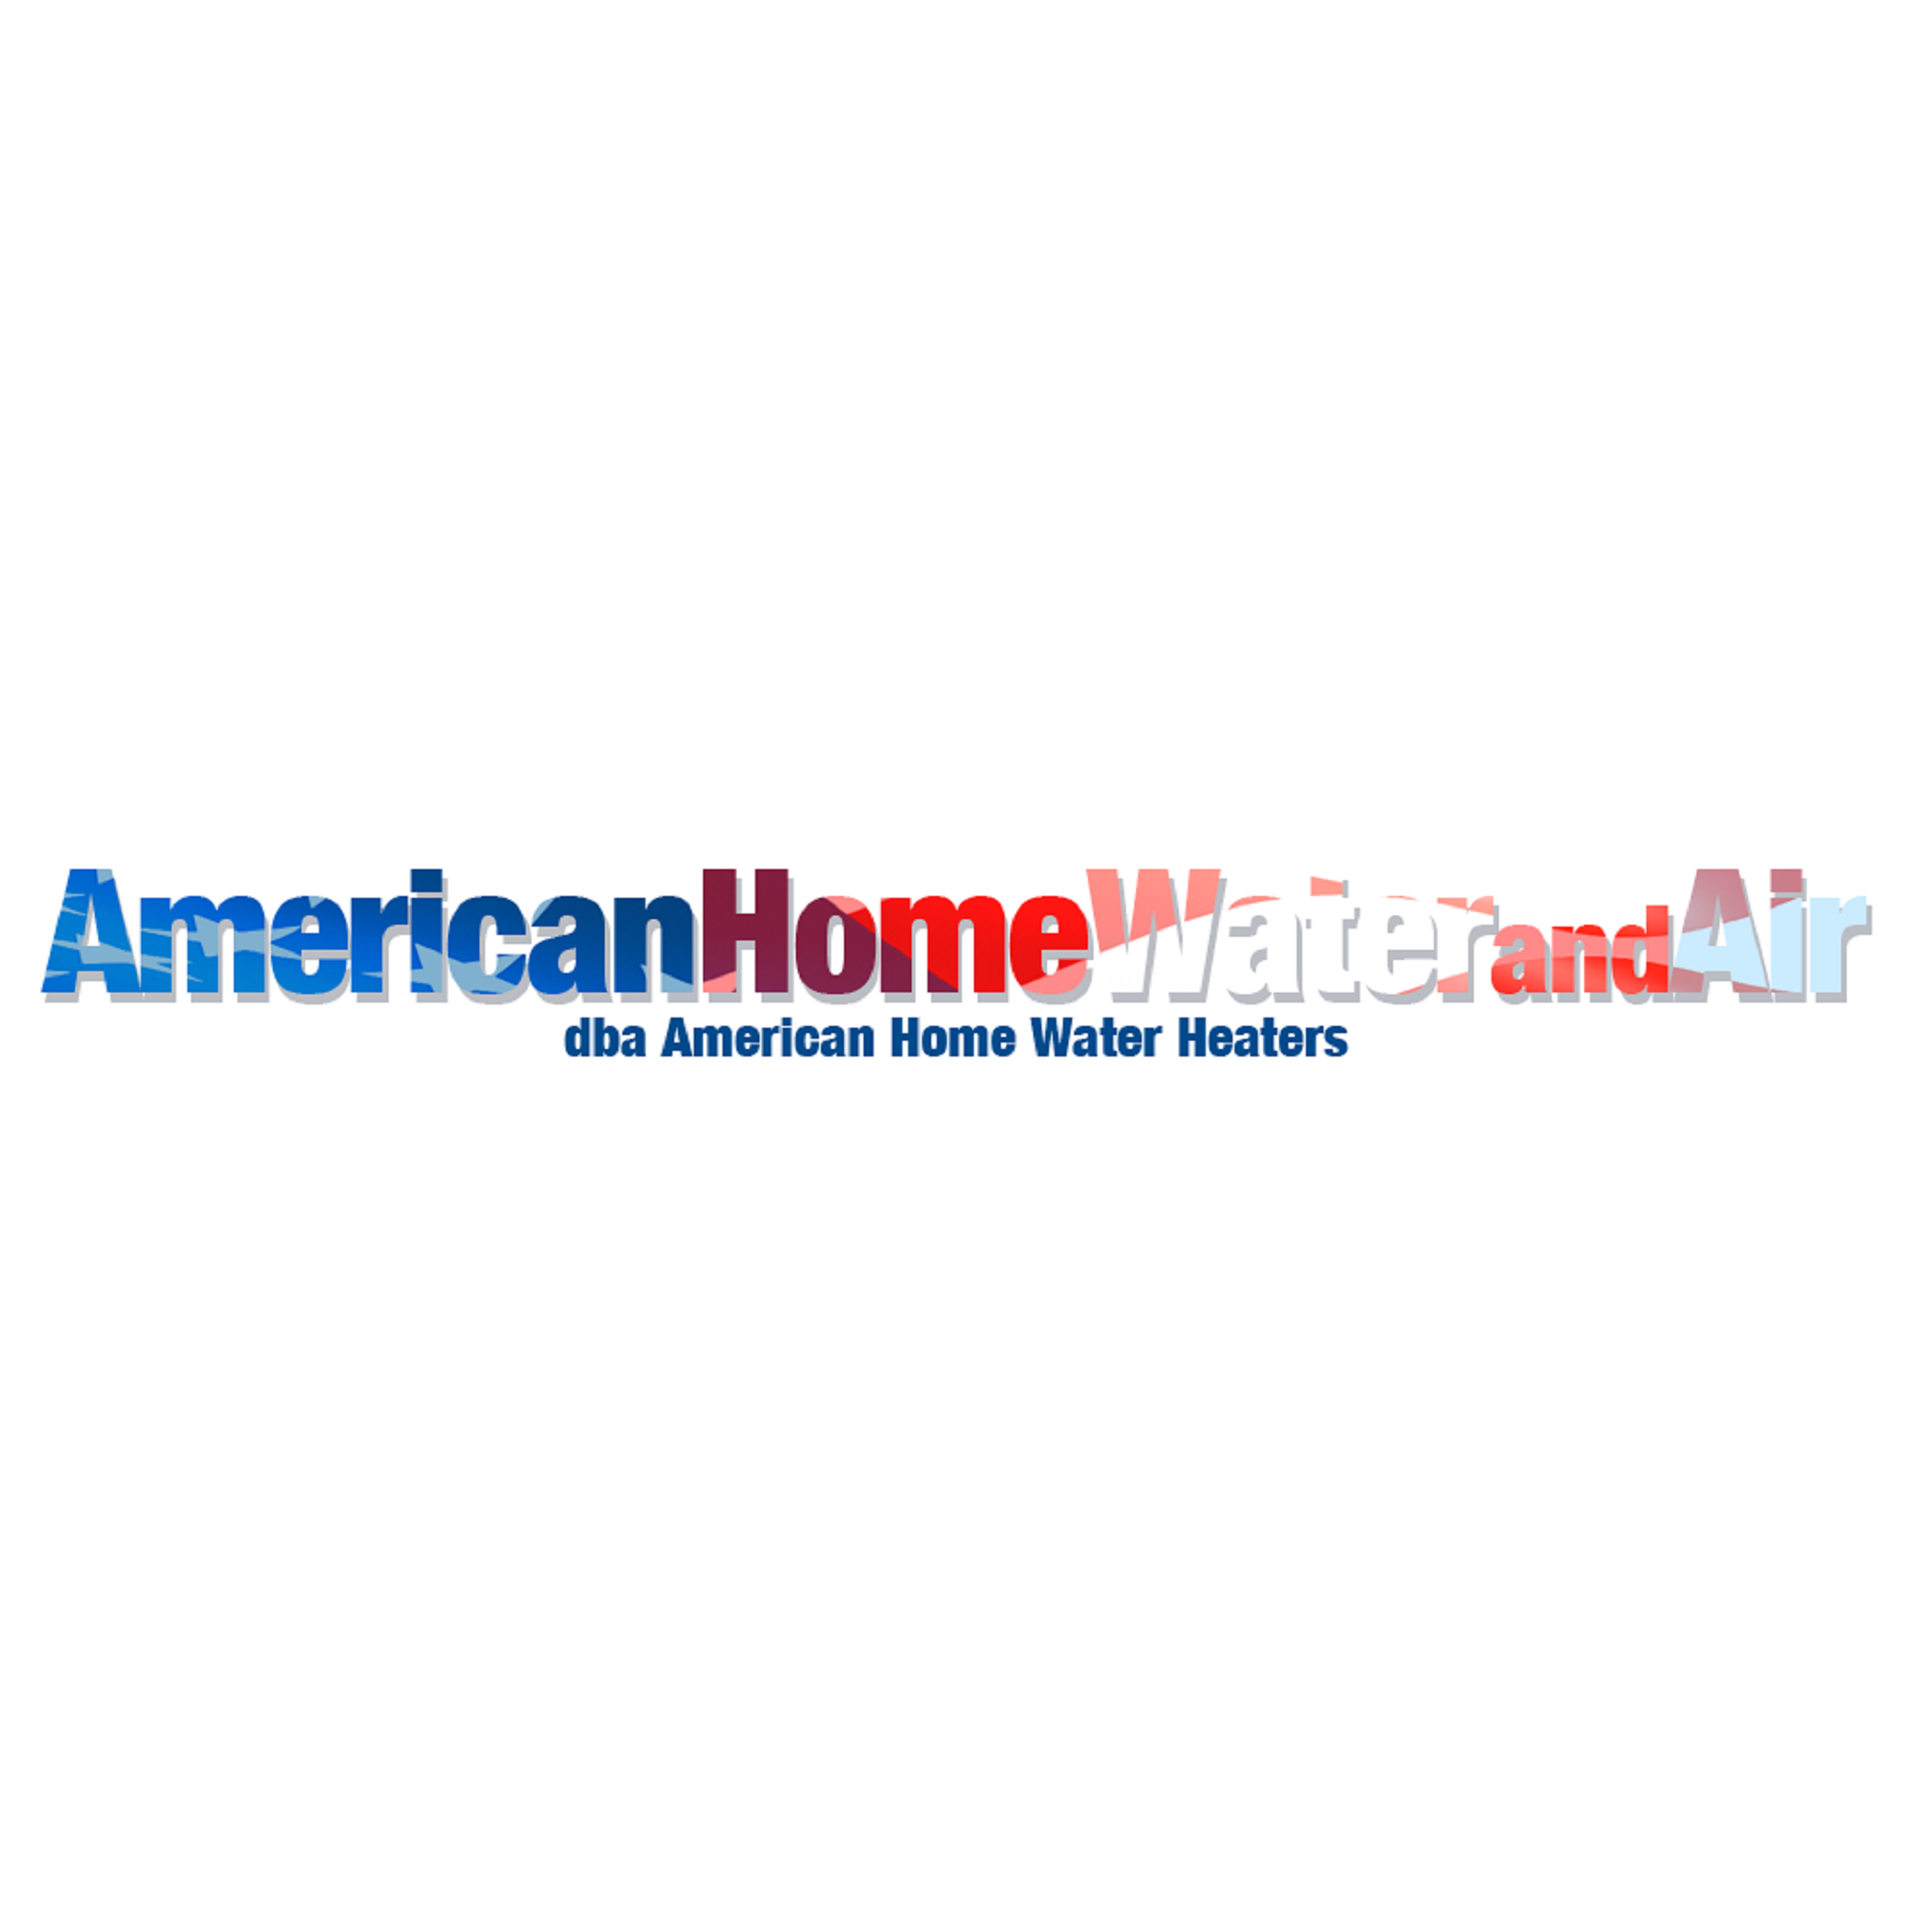 American Home Water & Air